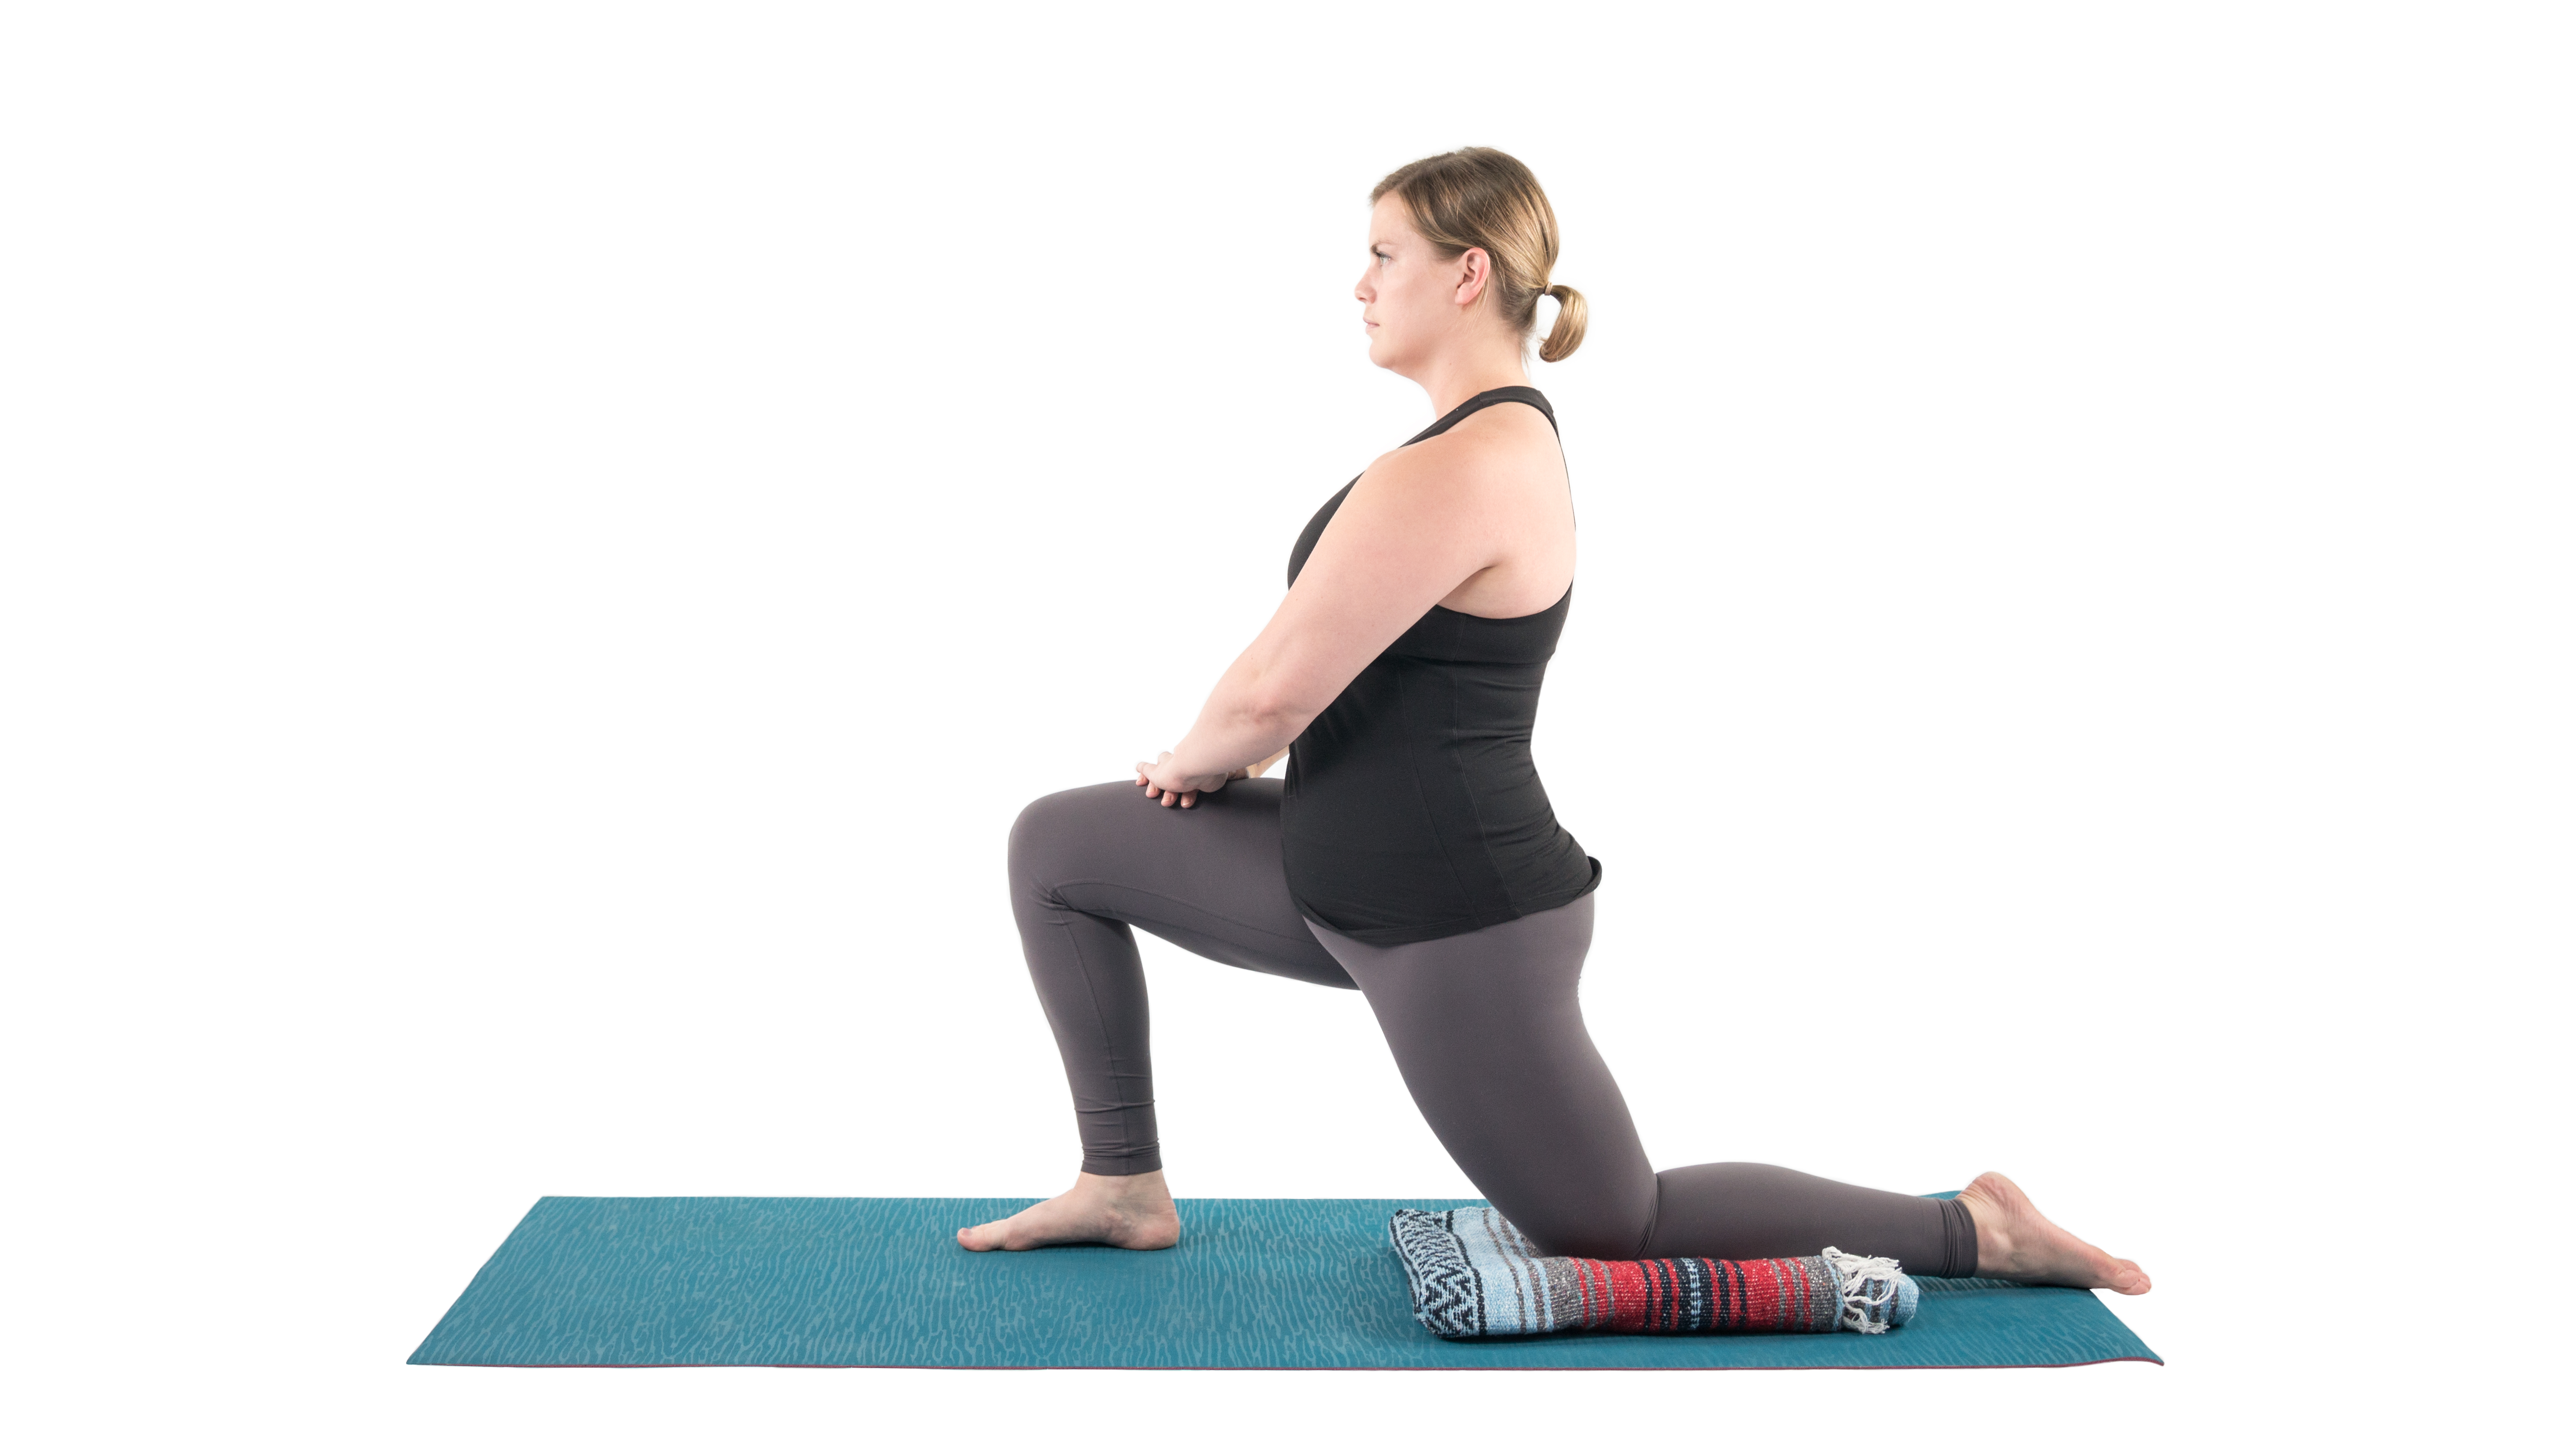 Anjaneyasana, low lunge, lunge with knee support, lunge to prepare for backbending, Dhanurasana prep